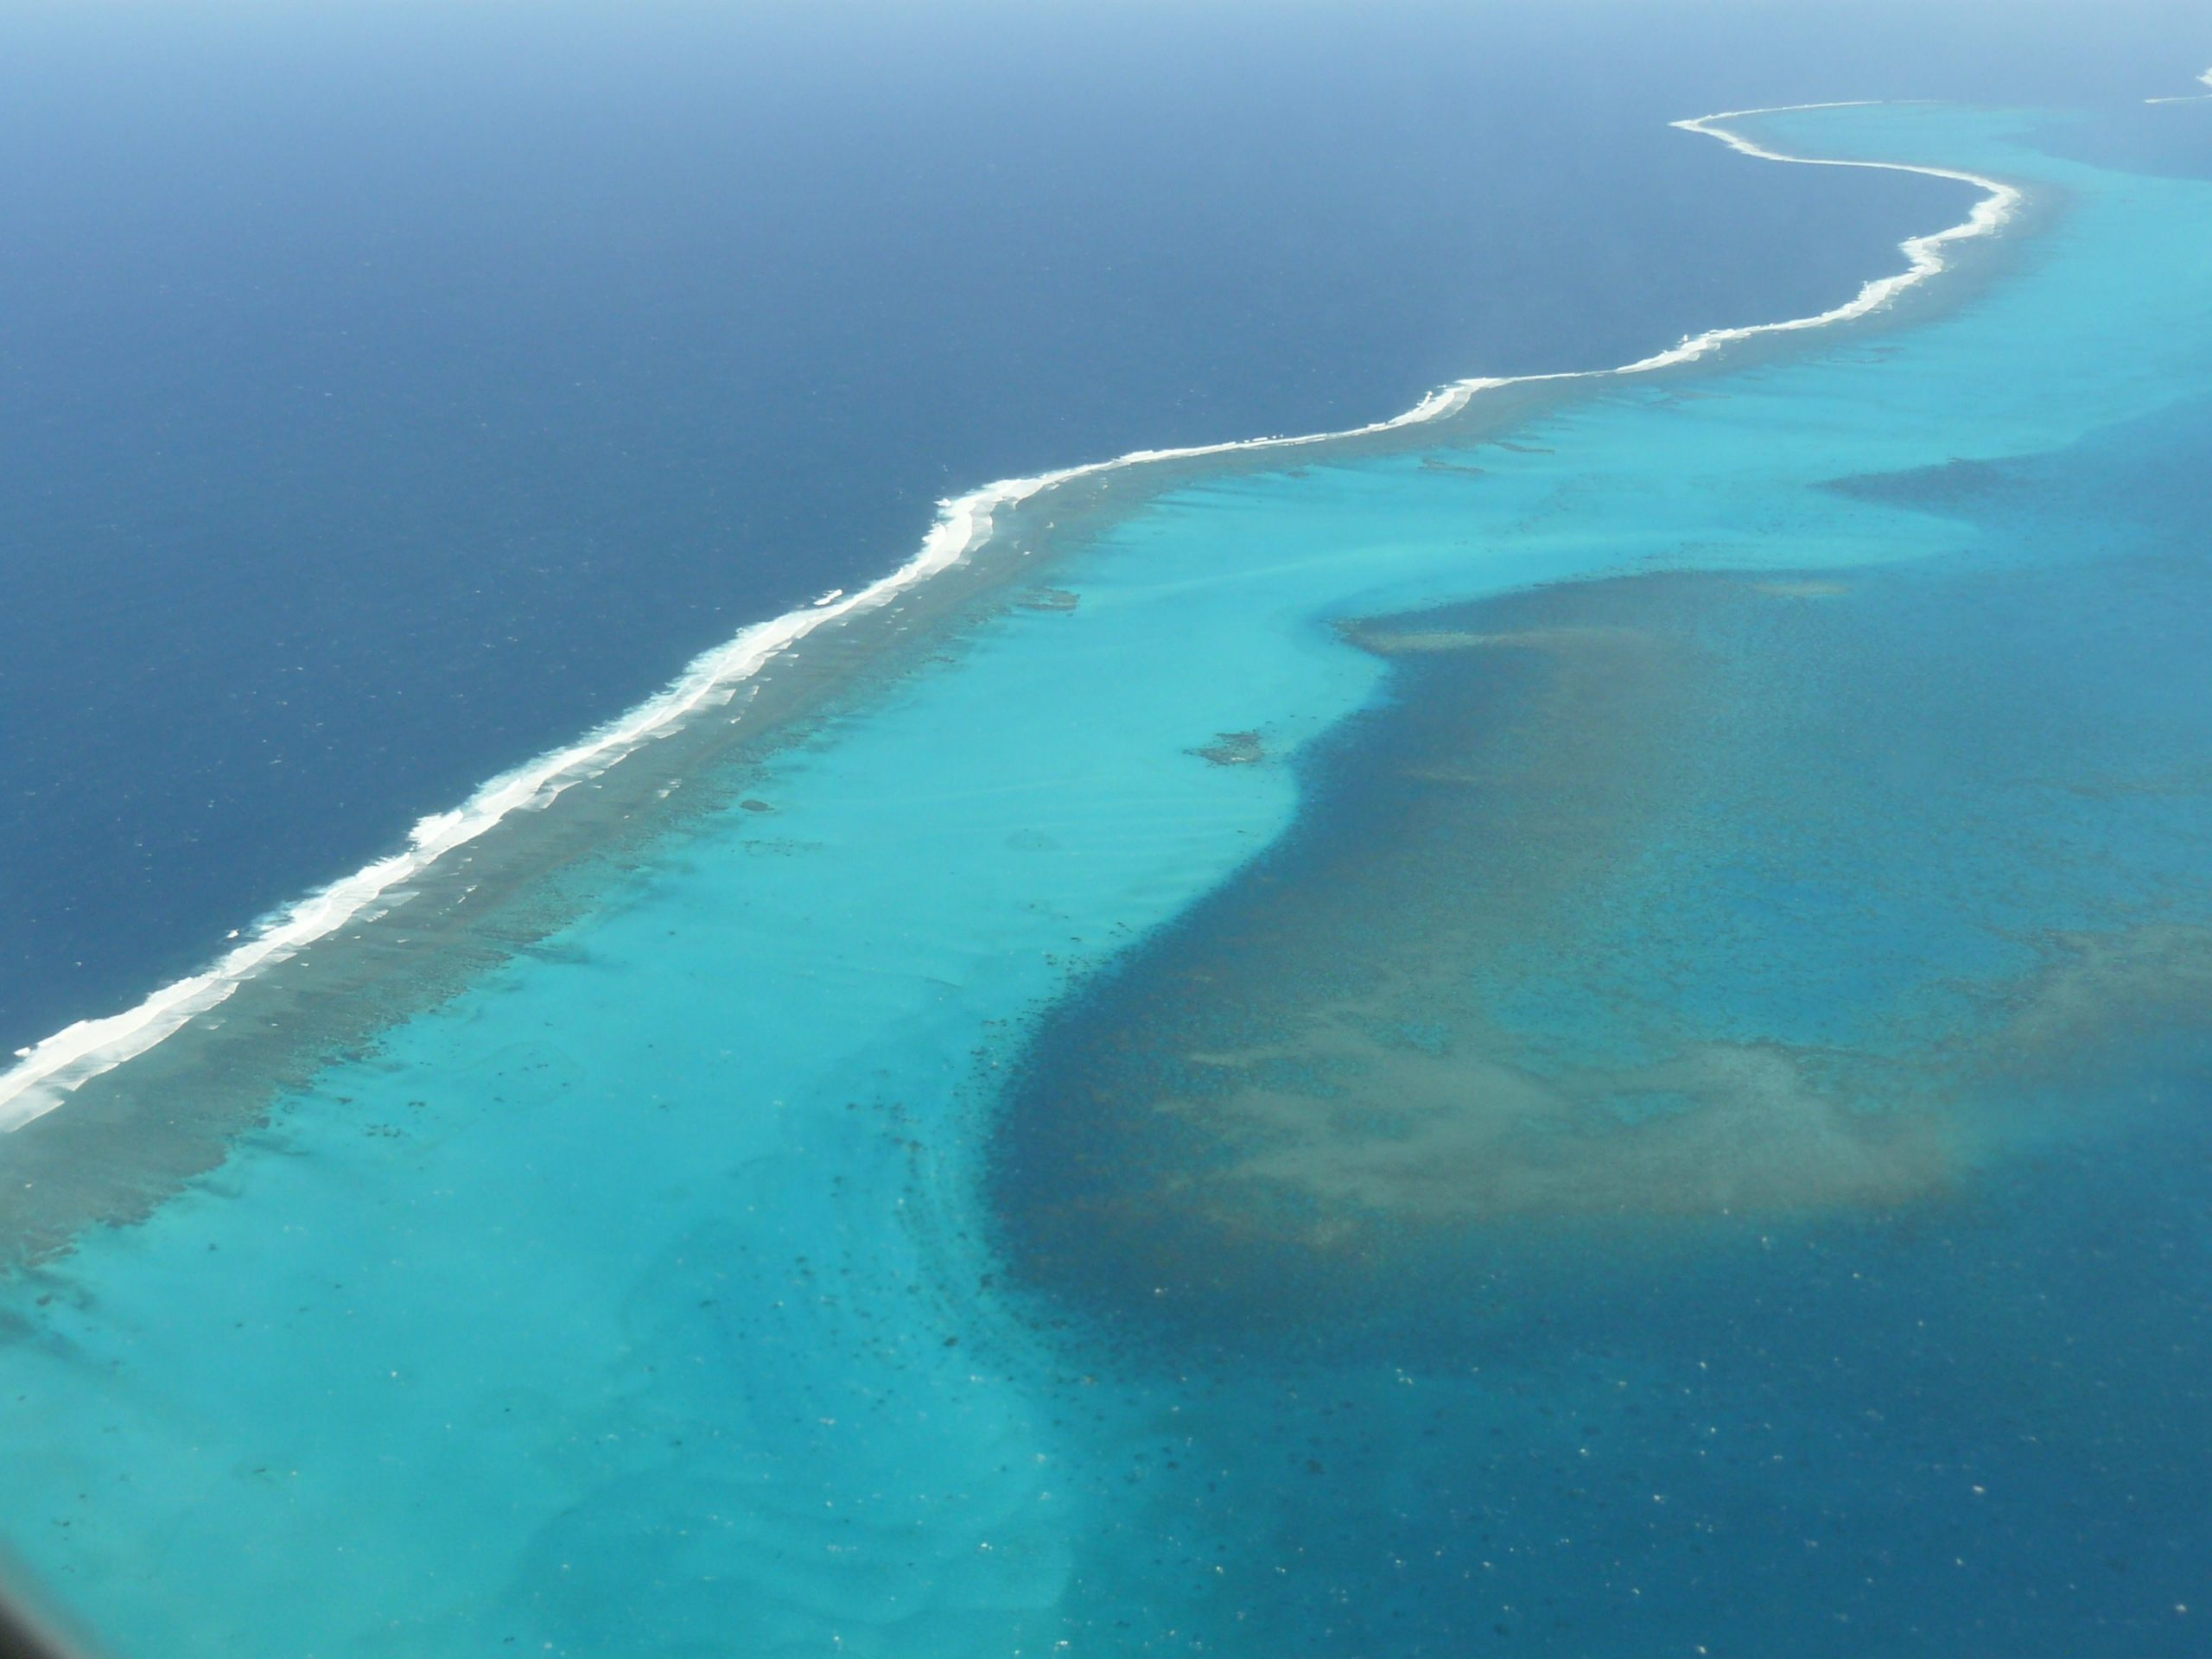 The New Caledonian Barrier Reef, a UNESCO World Heritage Site, seen from above.